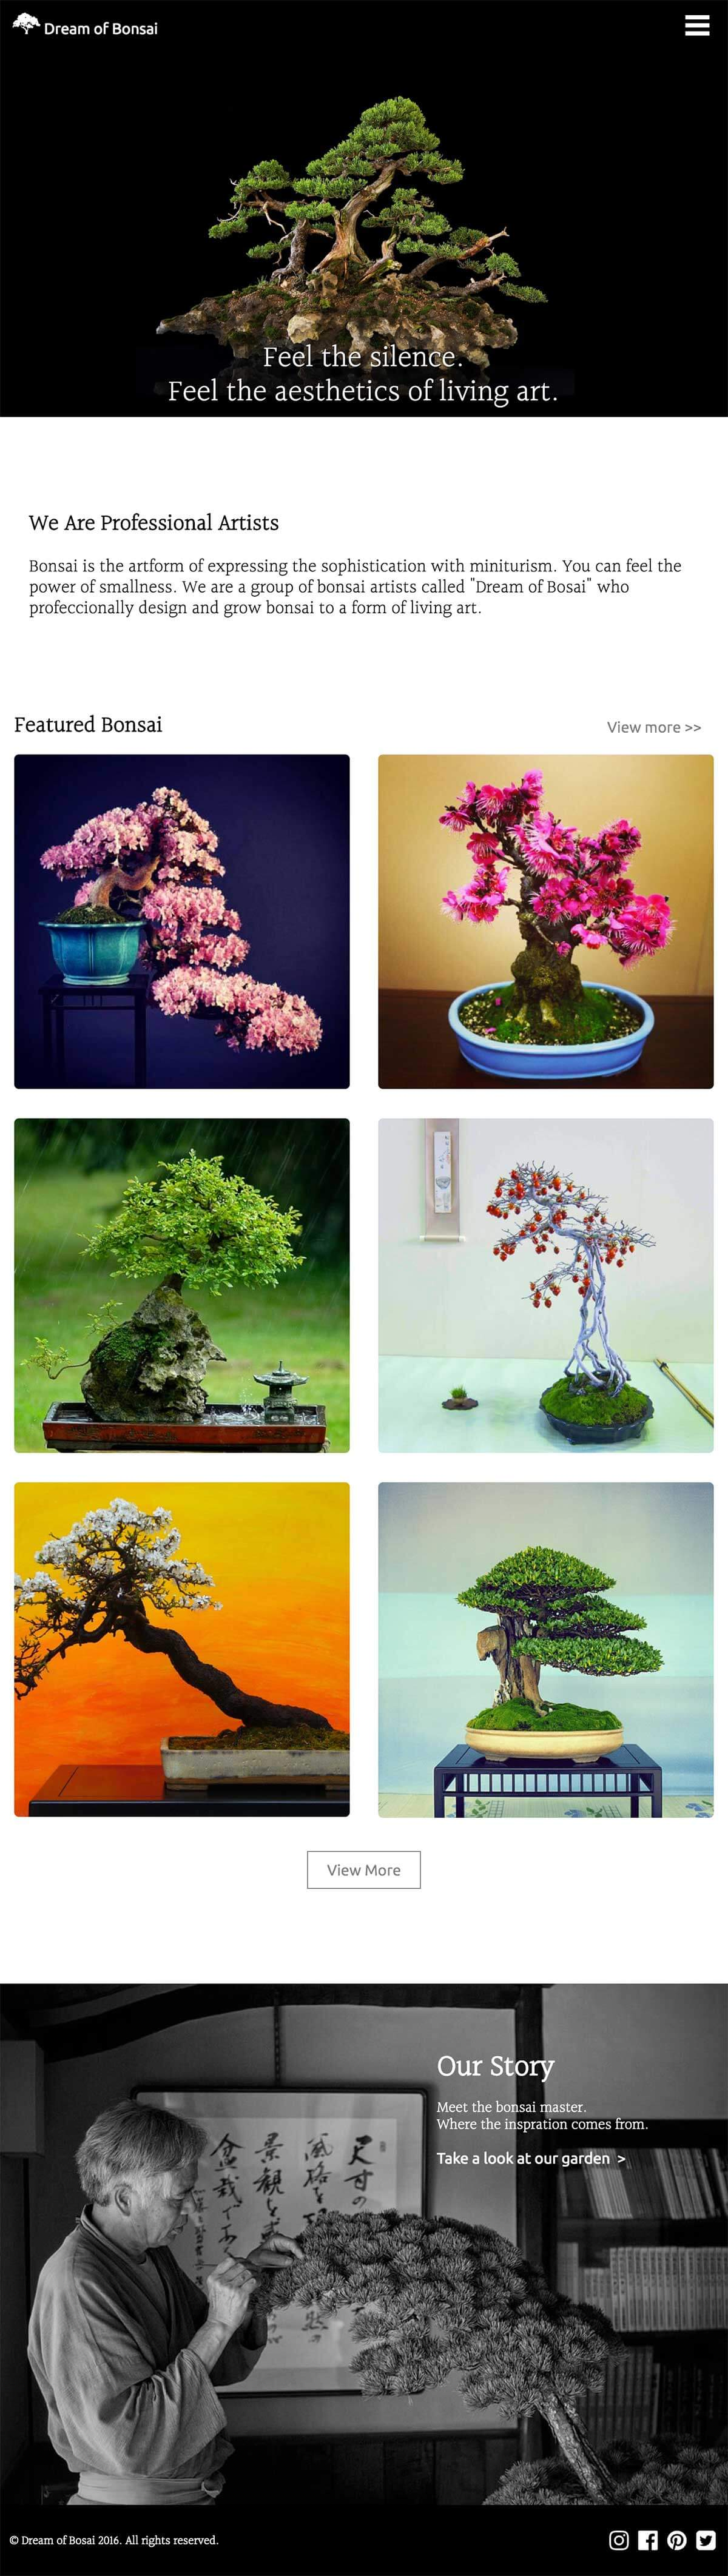 Dream of Bonsai webpage is shown as whole page with iPad portrait style